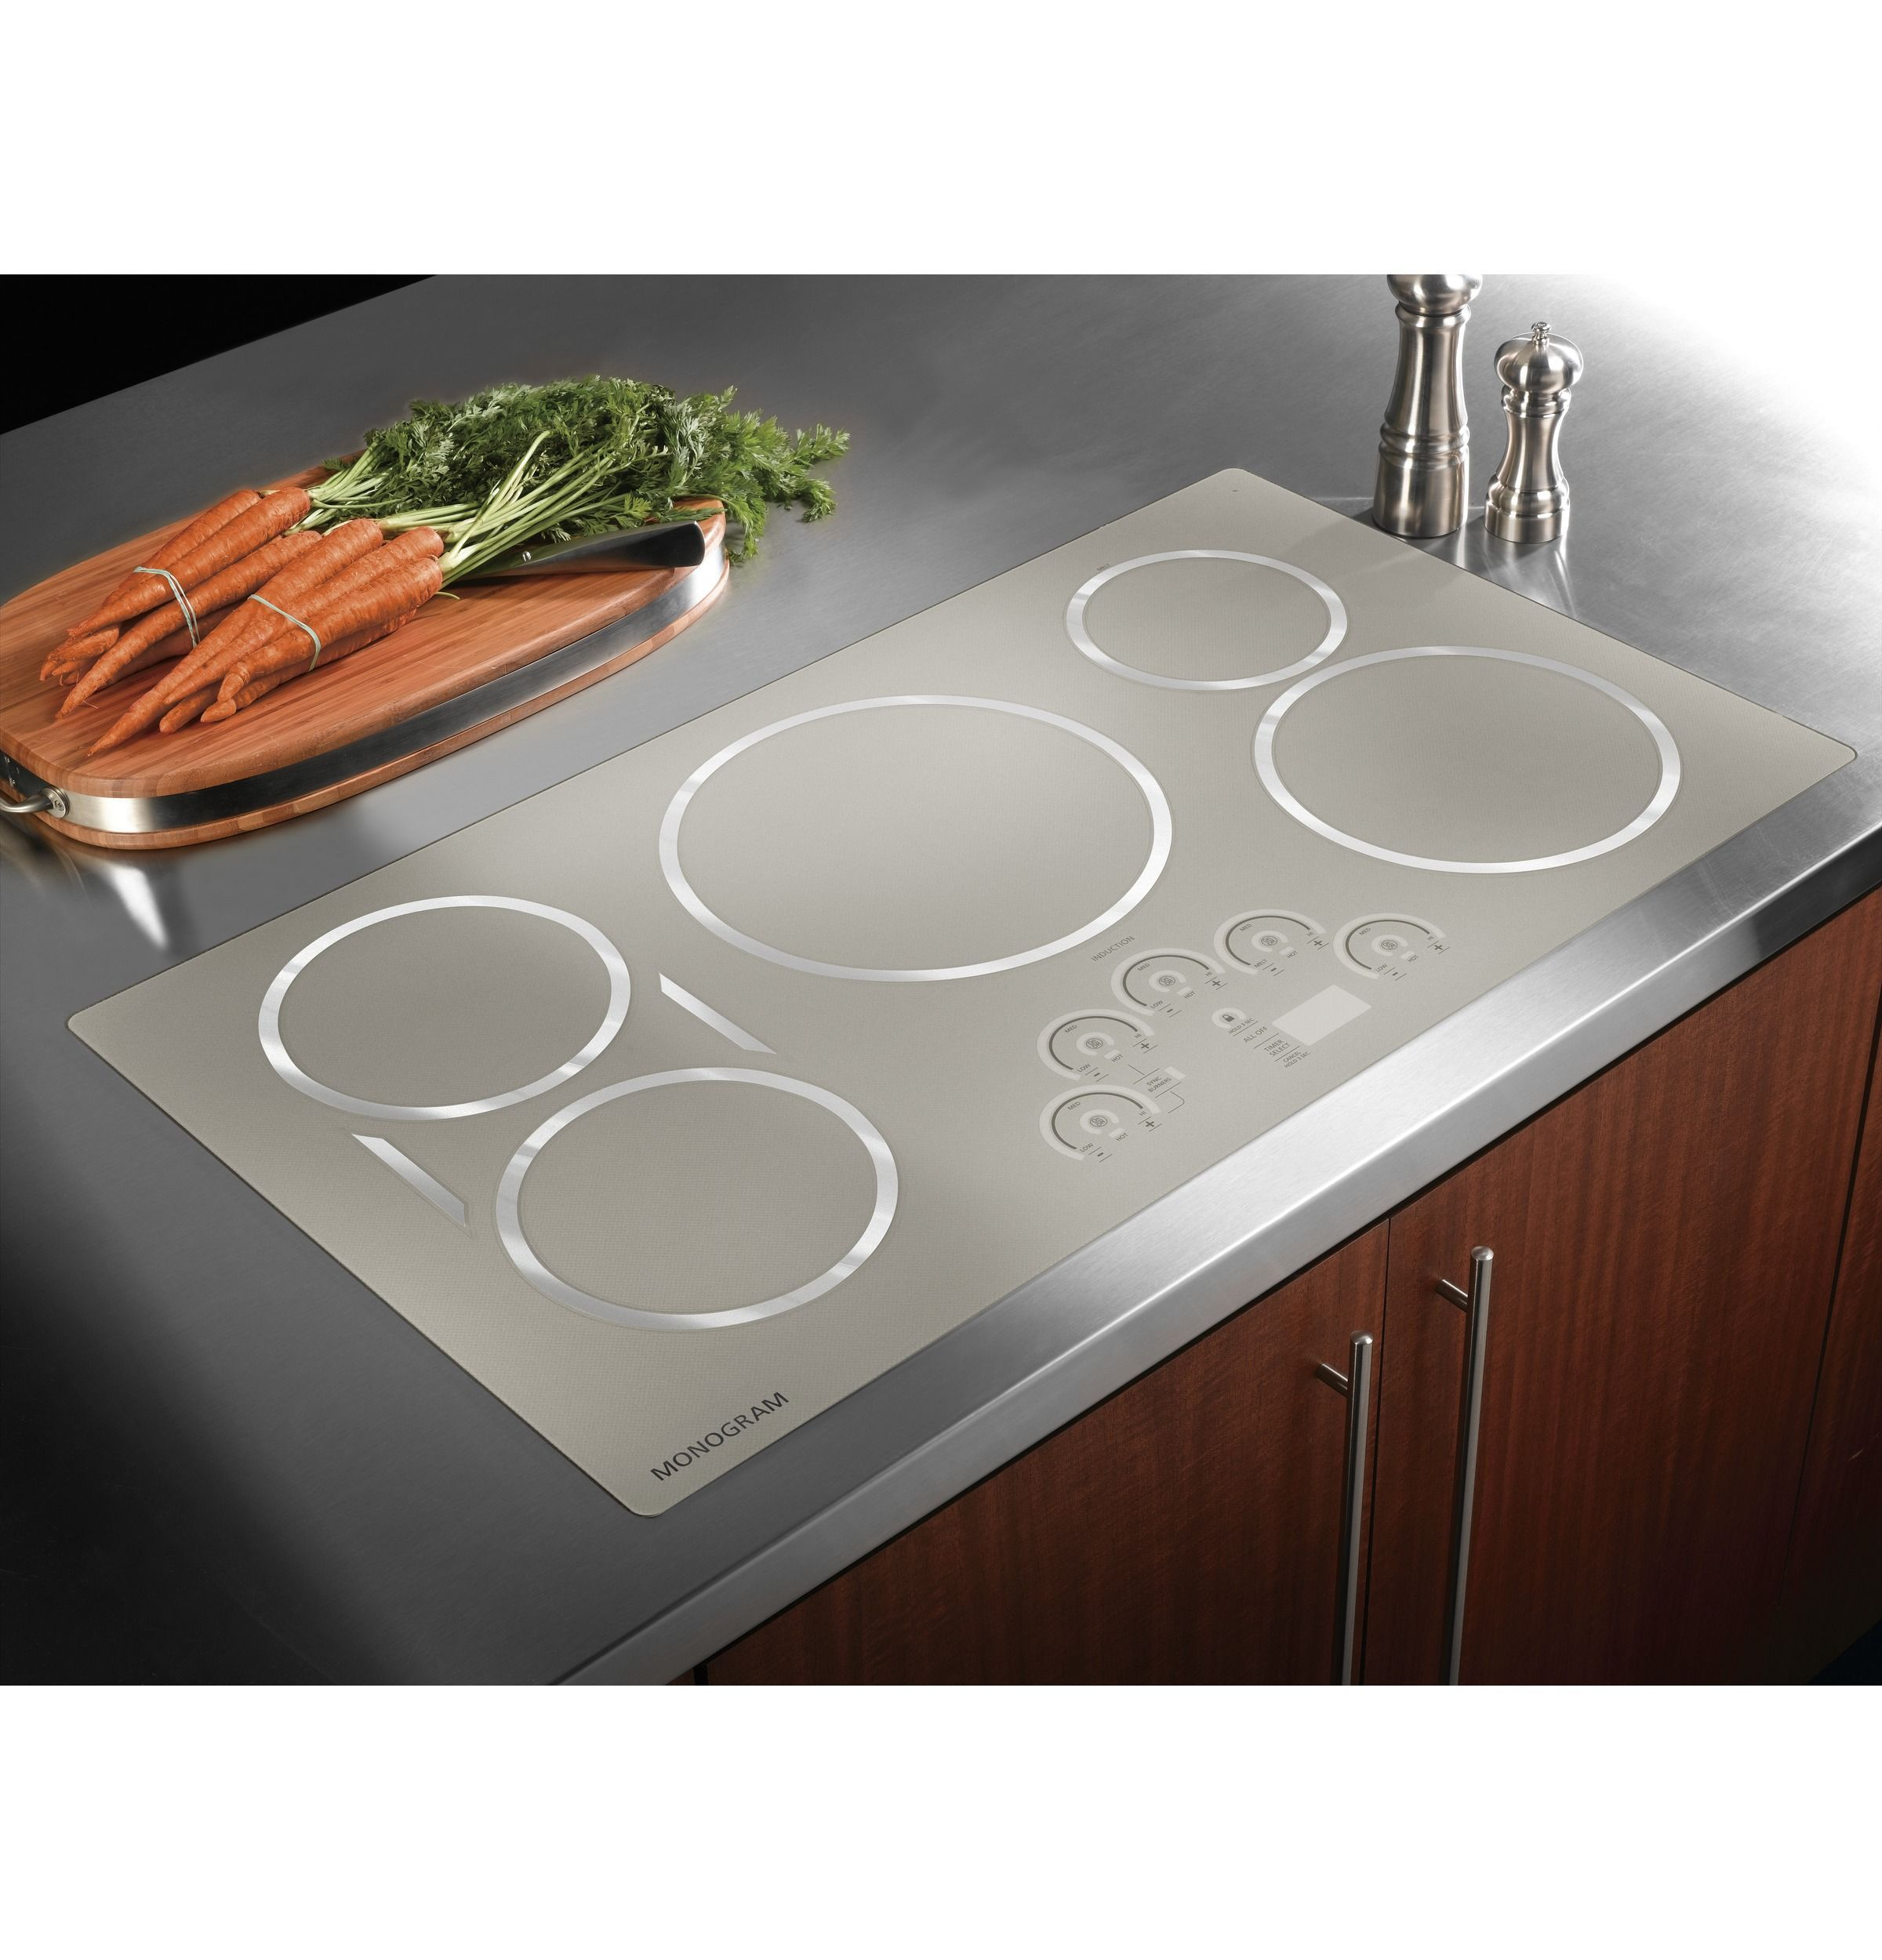 Having An Induction Cooktop Or Induction Cooktop Is A Wise Suggestion And A Excellent Method To Save Areas In Th Induction Cooktop Simple Kitchen Cooktop